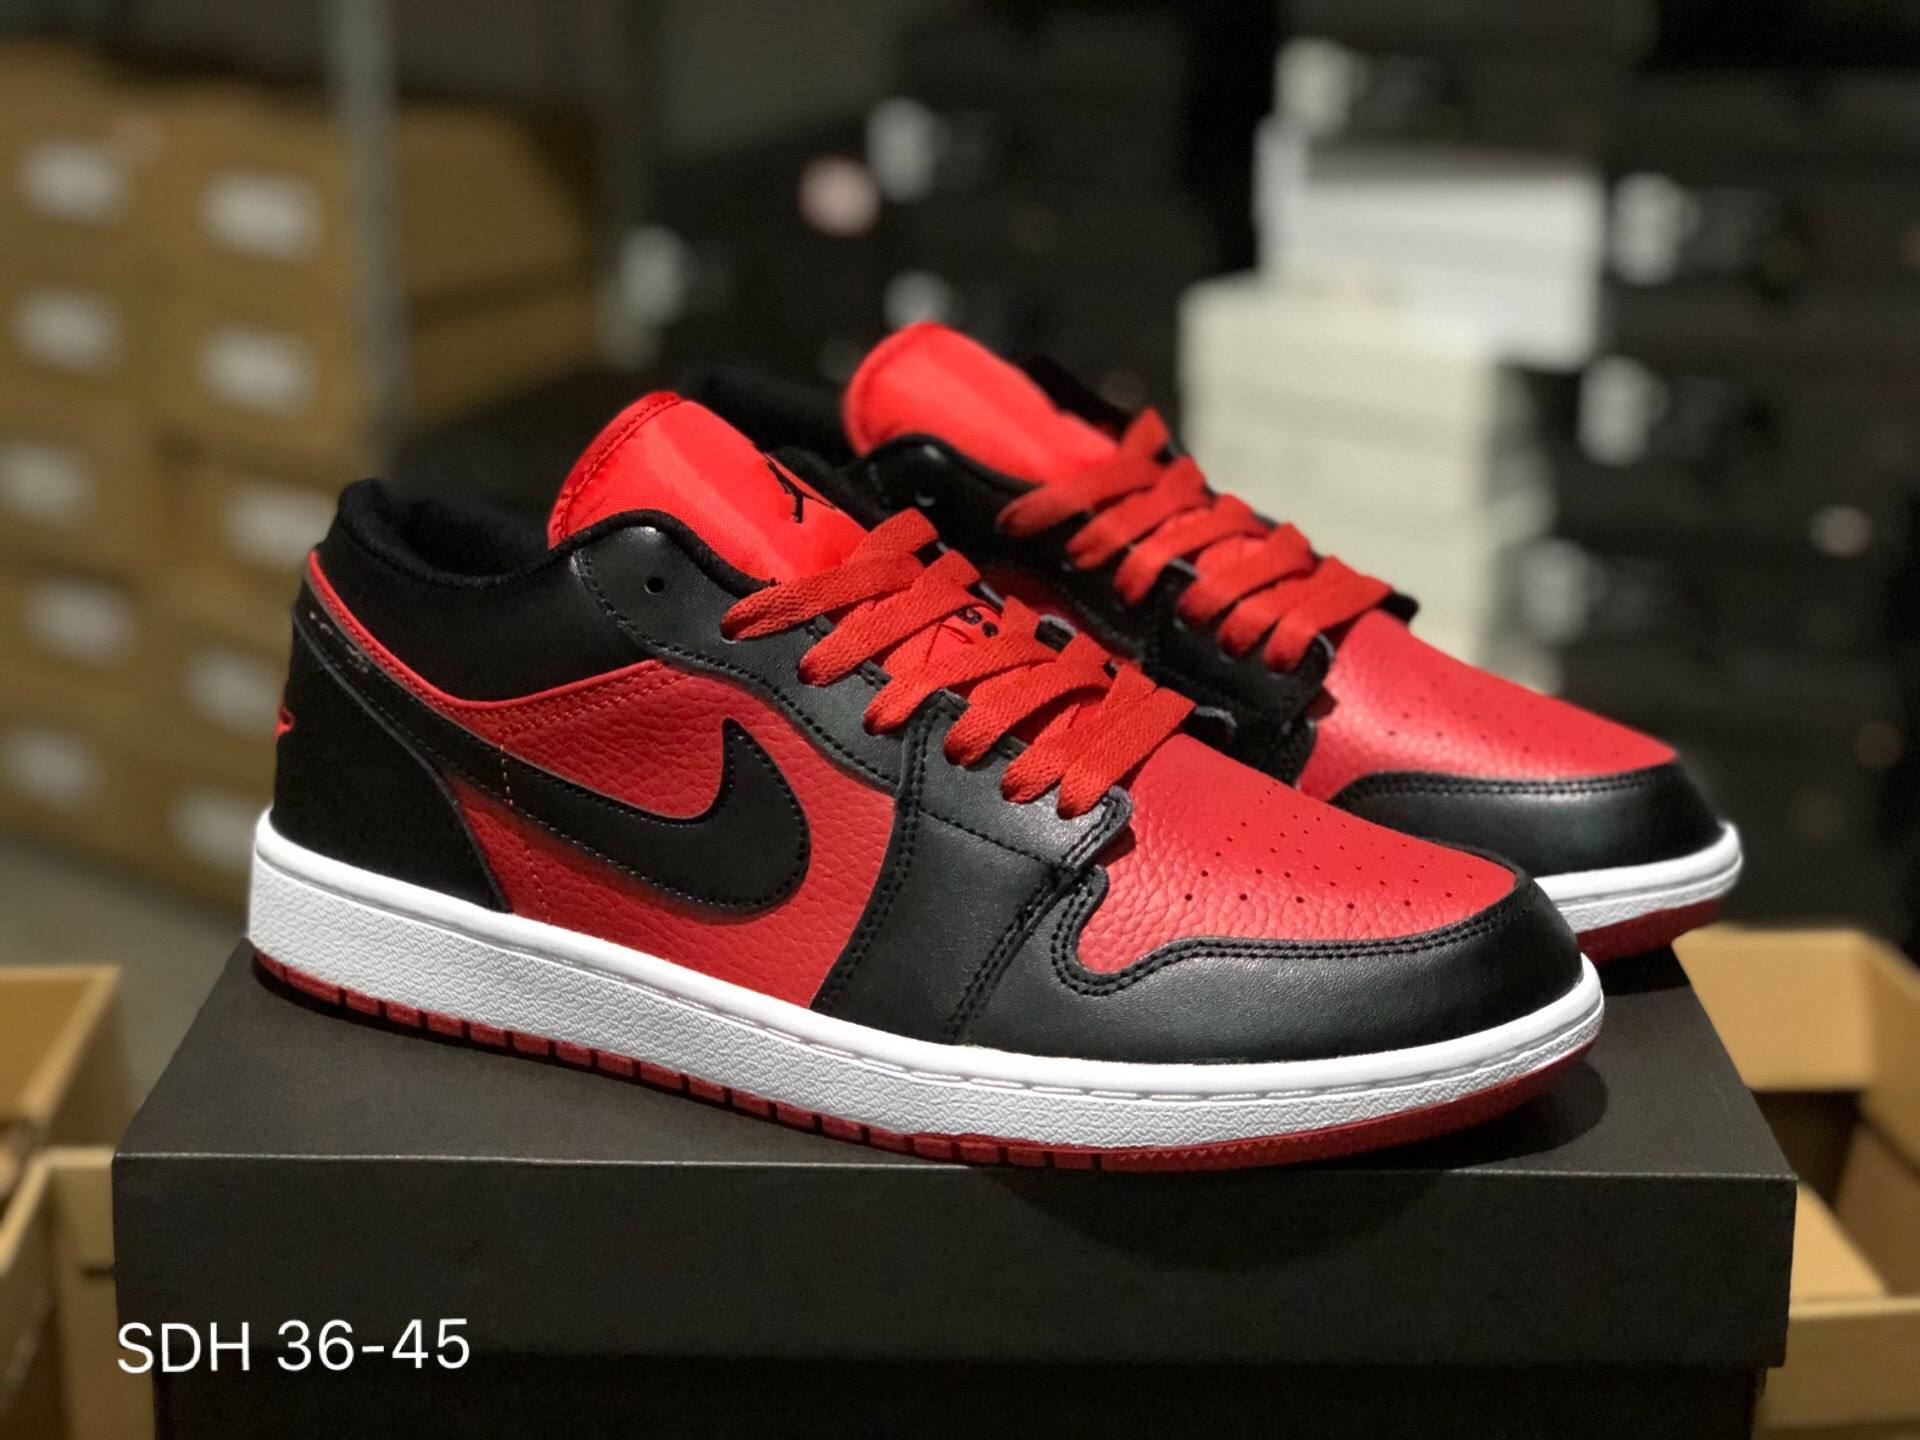 Air Jordan 1 Low Red Black White Shoes